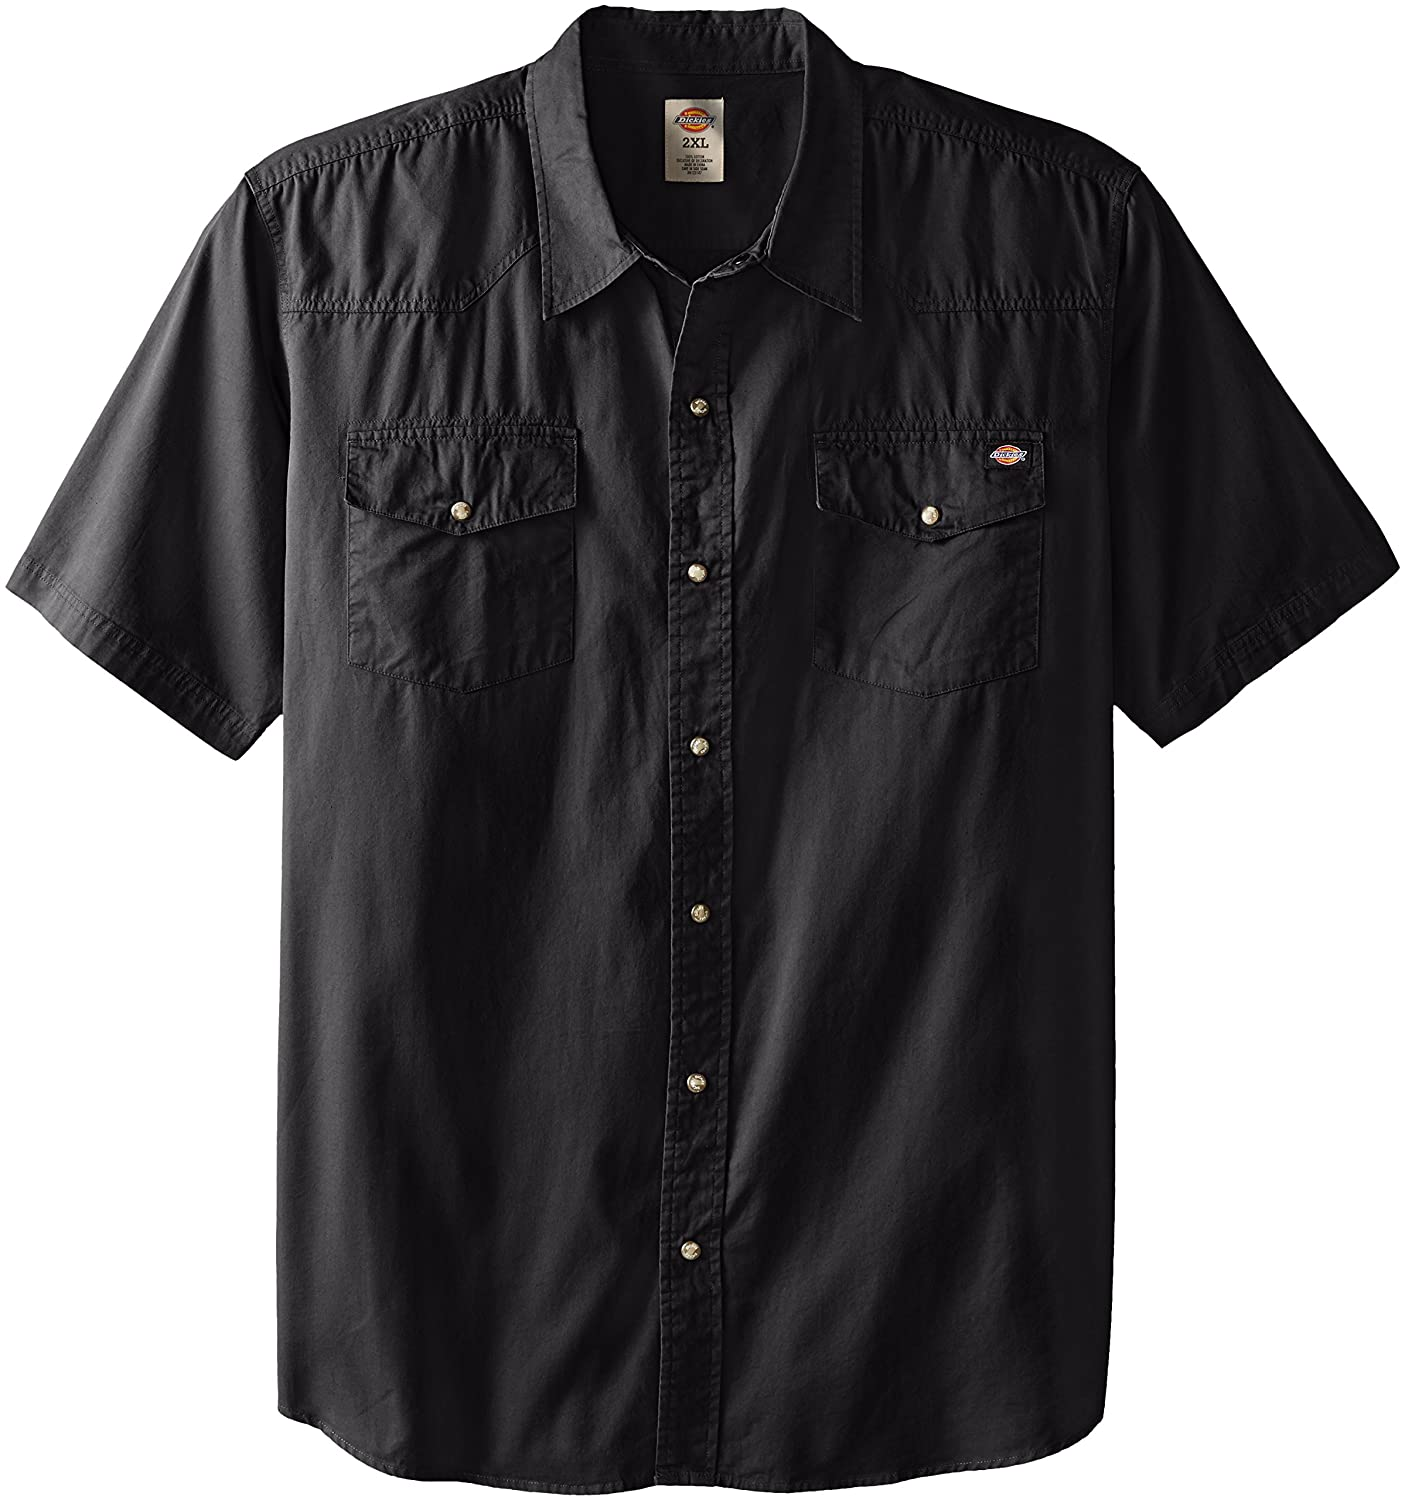 Dickies Men's Big Short Sleeve Twill Western Shirt dickies рубашка утепленная dickies ryker shirt jacket fiery red